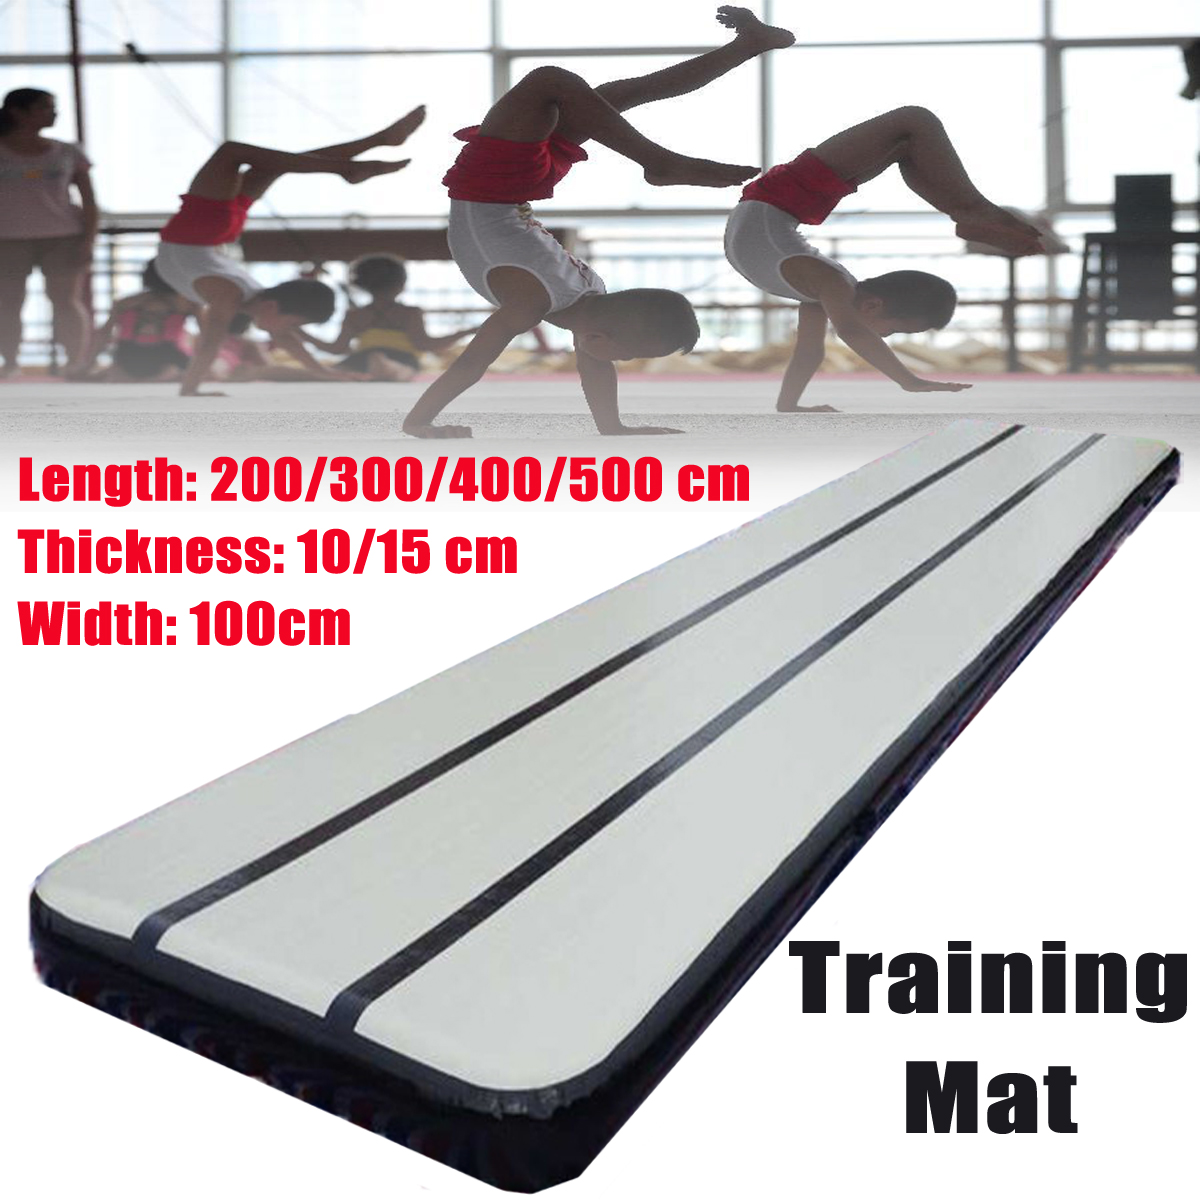 2/3/4/5M Air Tumbling Track Roller Inflatable Mat Home Training Sports Protector for Gymnastics